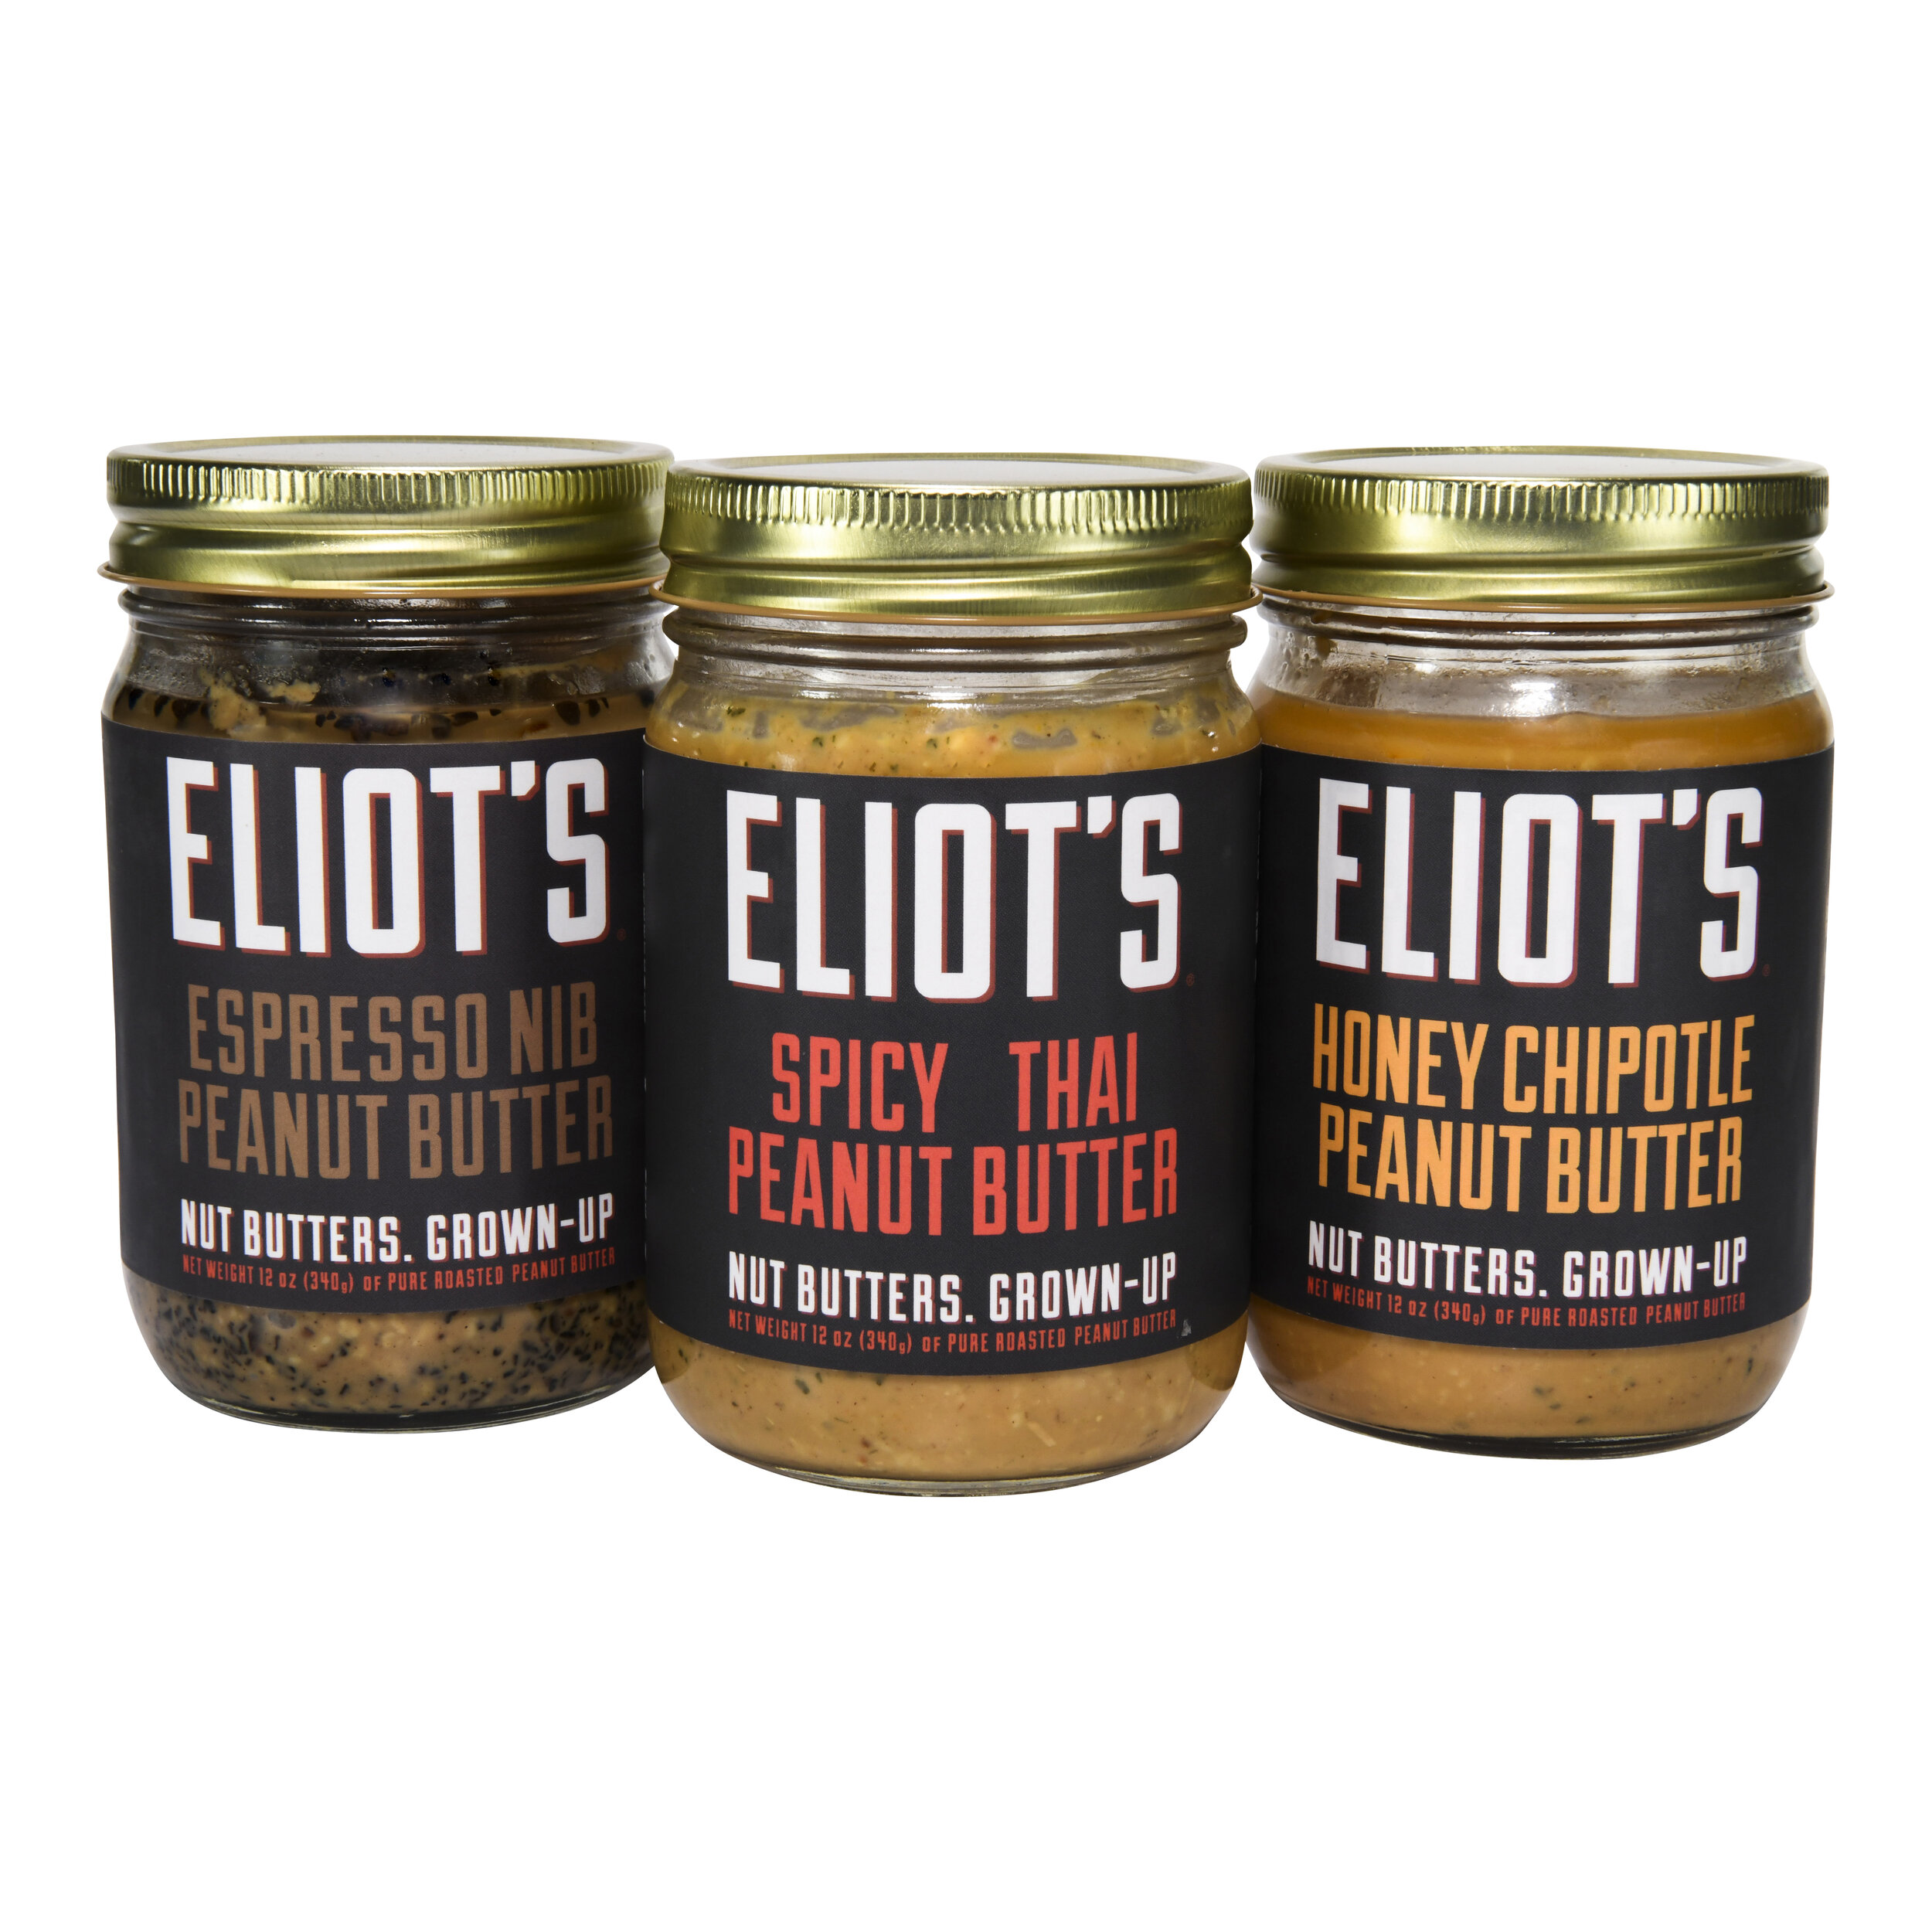 Well that's great news as our growing fan base loves to buy our products at their local stores. - To get the ball rolling please email: orders@eliotsnutbutters.com